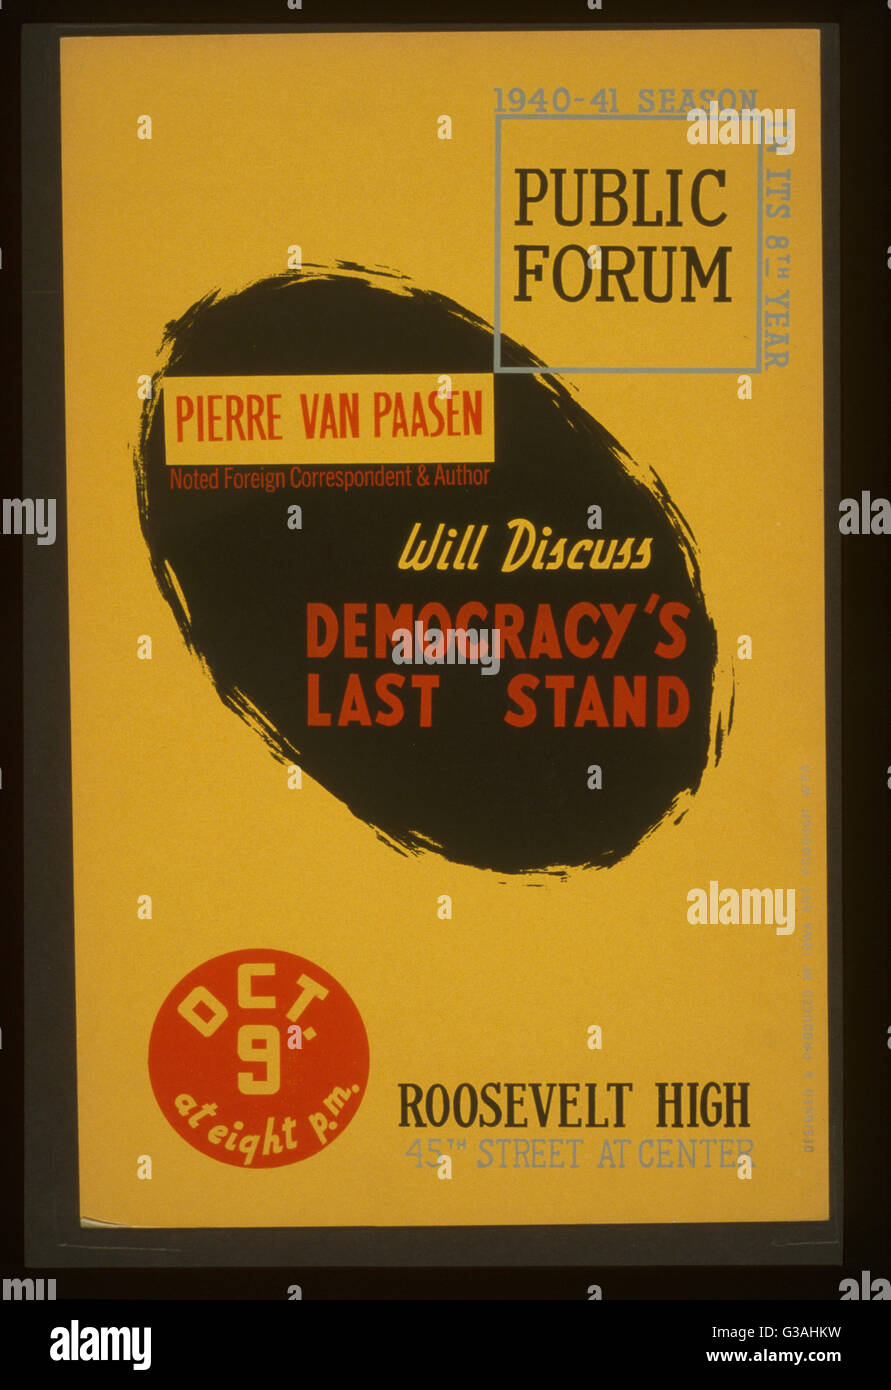 Pierre van Paasen, noted foreign correspondent & author, will discuss democracy's last stand. Poster - Stock Image